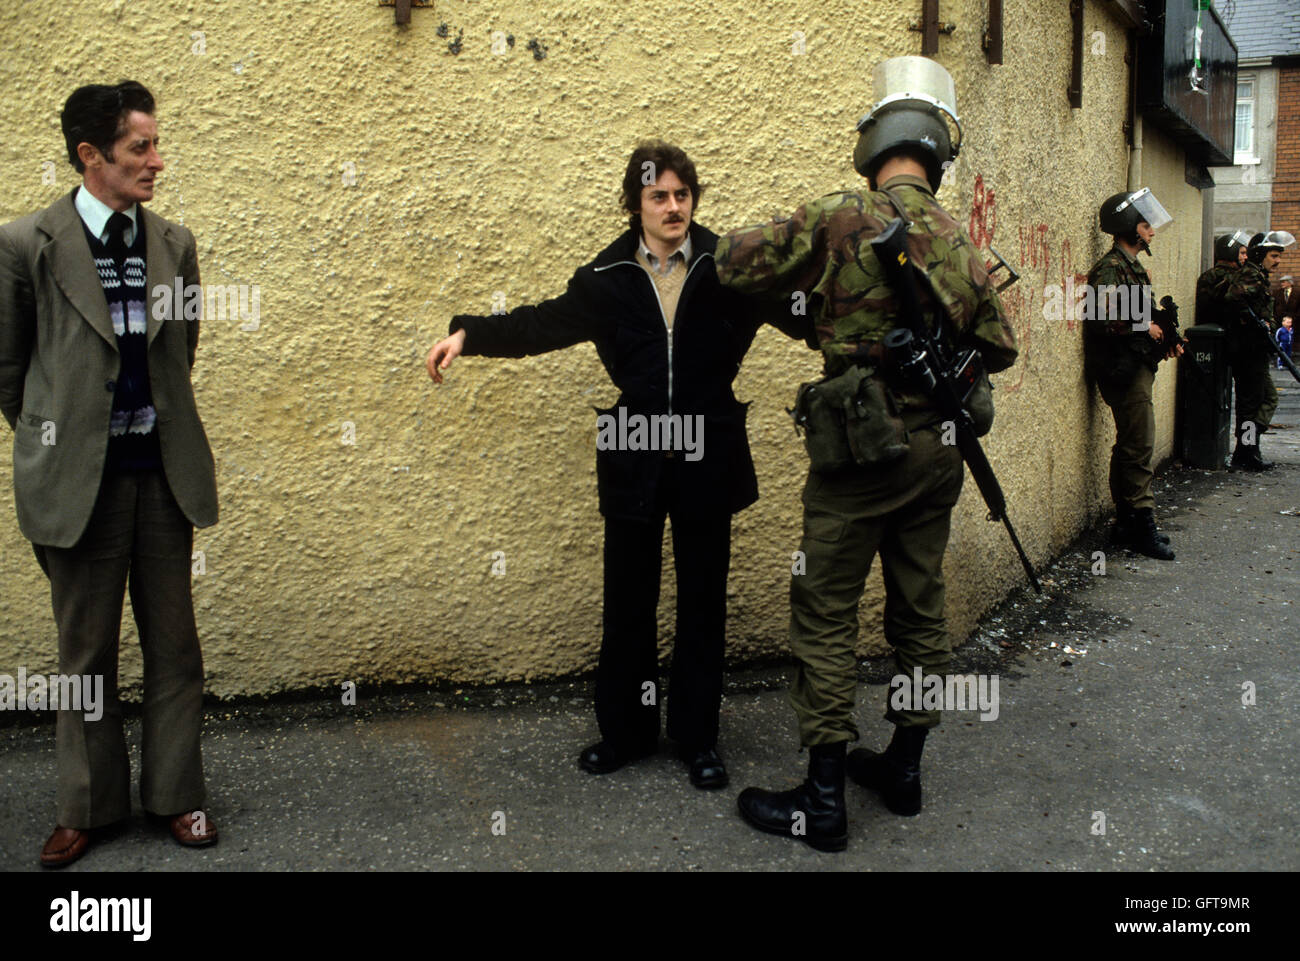 Belfast The Troubles 1980s. British soldiers stop and search. 1981 Northern Ireland. HOMER SYKES - Stock Image